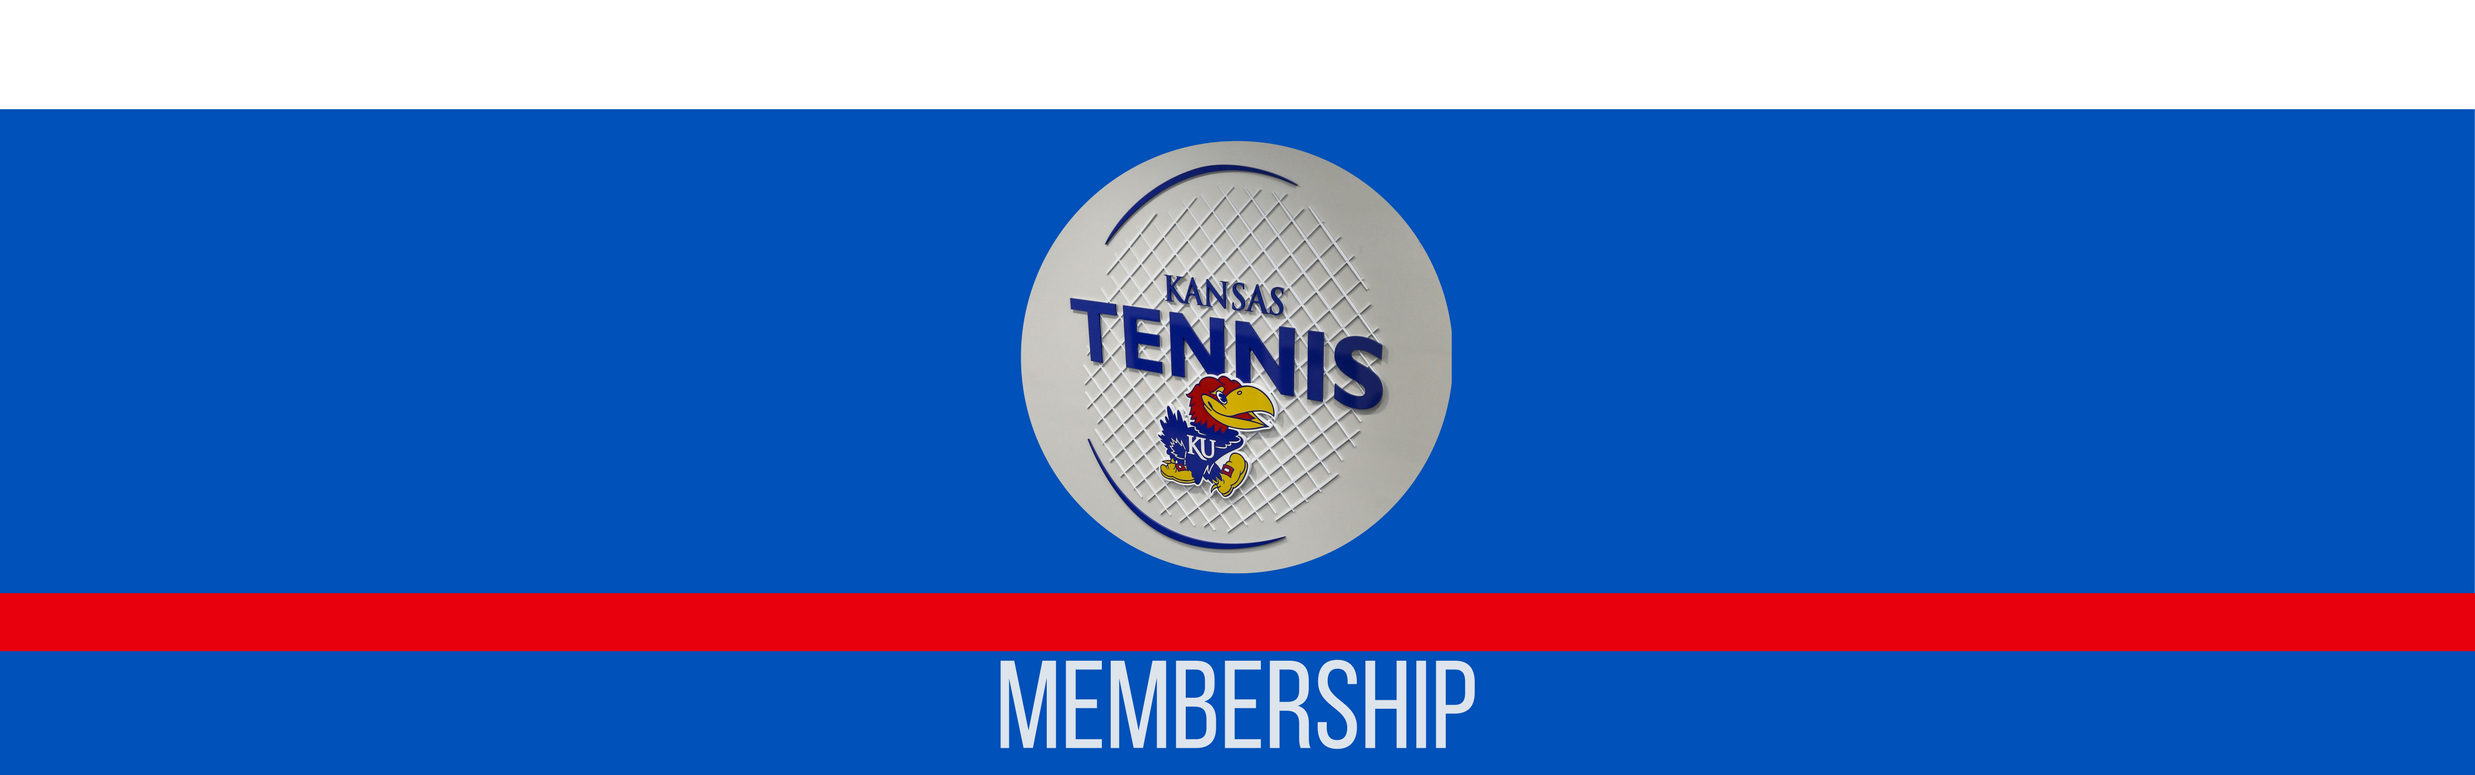 jayhawk-tennis-membership-kansas